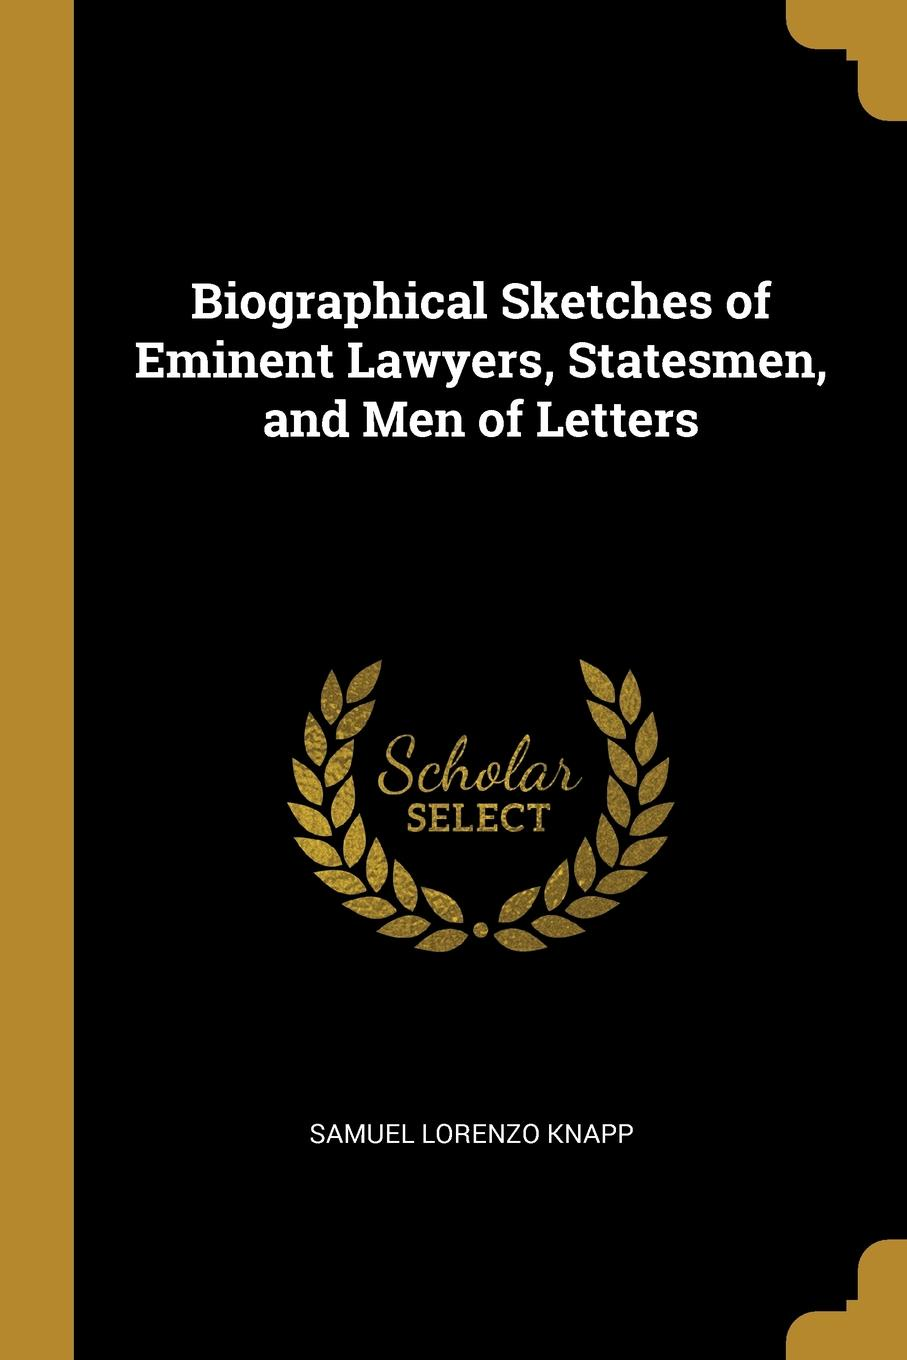 Samuel Lorenzo Knapp Biographical Sketches of Eminent Lawyers, Statesmen, and Men of Letters knapp samuel lorenzo biographical sketches of eminent lawyers statesmen and men of letters